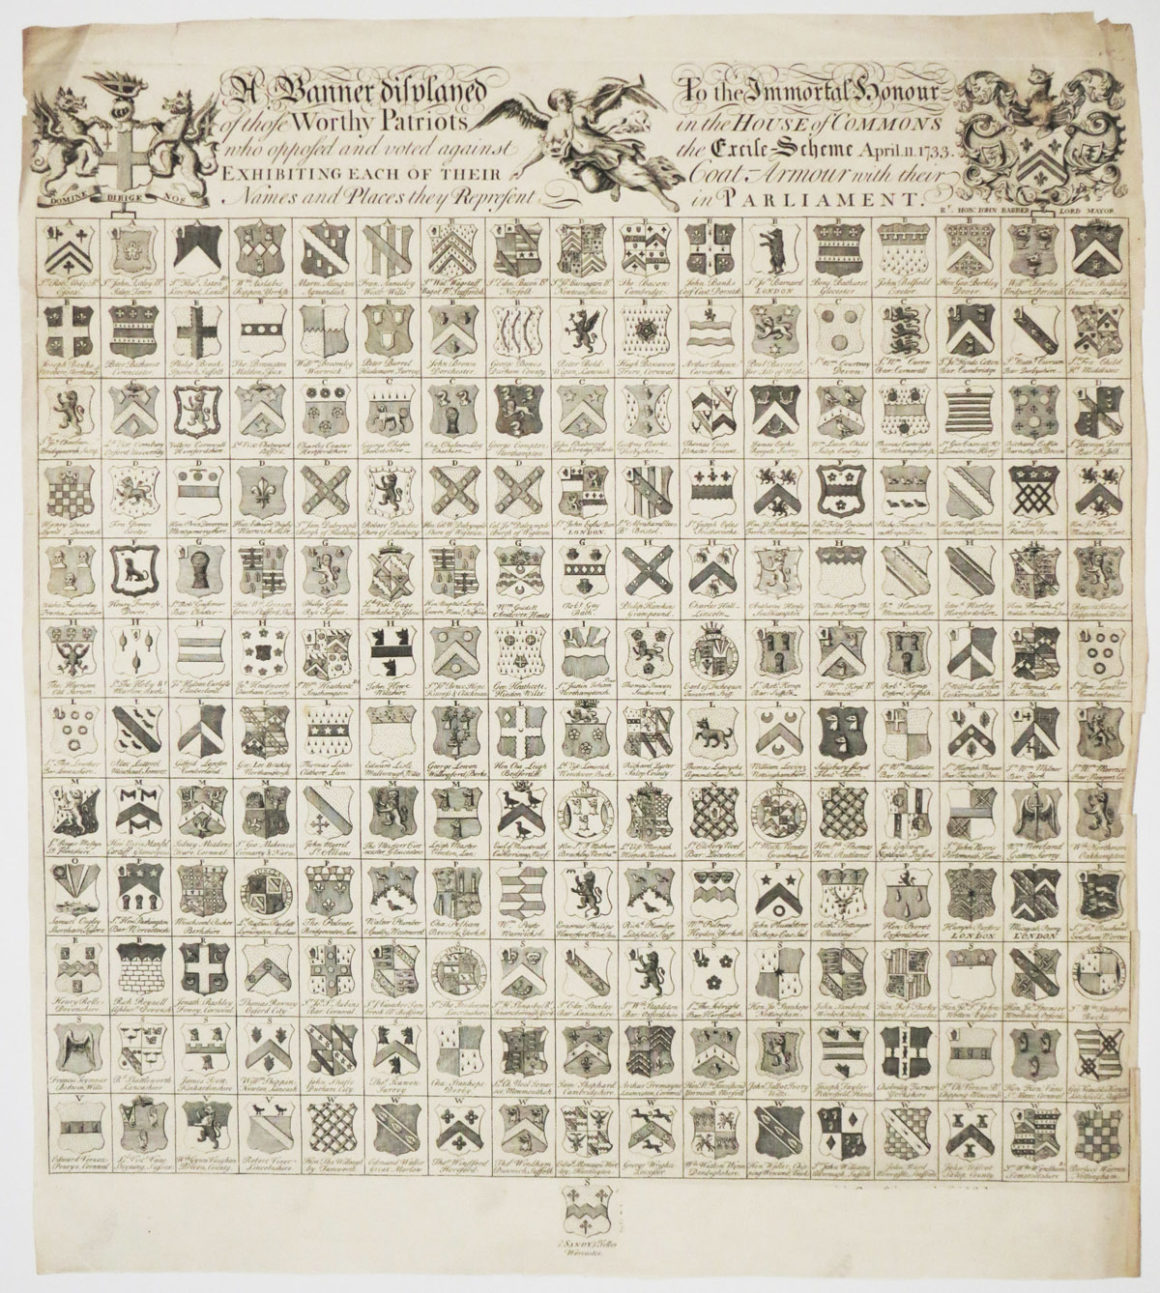 """A Banner displayed To the Immortal honour of those Worthy Patriots in the House of Commons who opposed and voted against the Excise Scheme April 11 1733. Exhibiting Each of Their Coat-Armour with their Names and Places they Represent in Parliament."" By Anon, Etching, 1733"